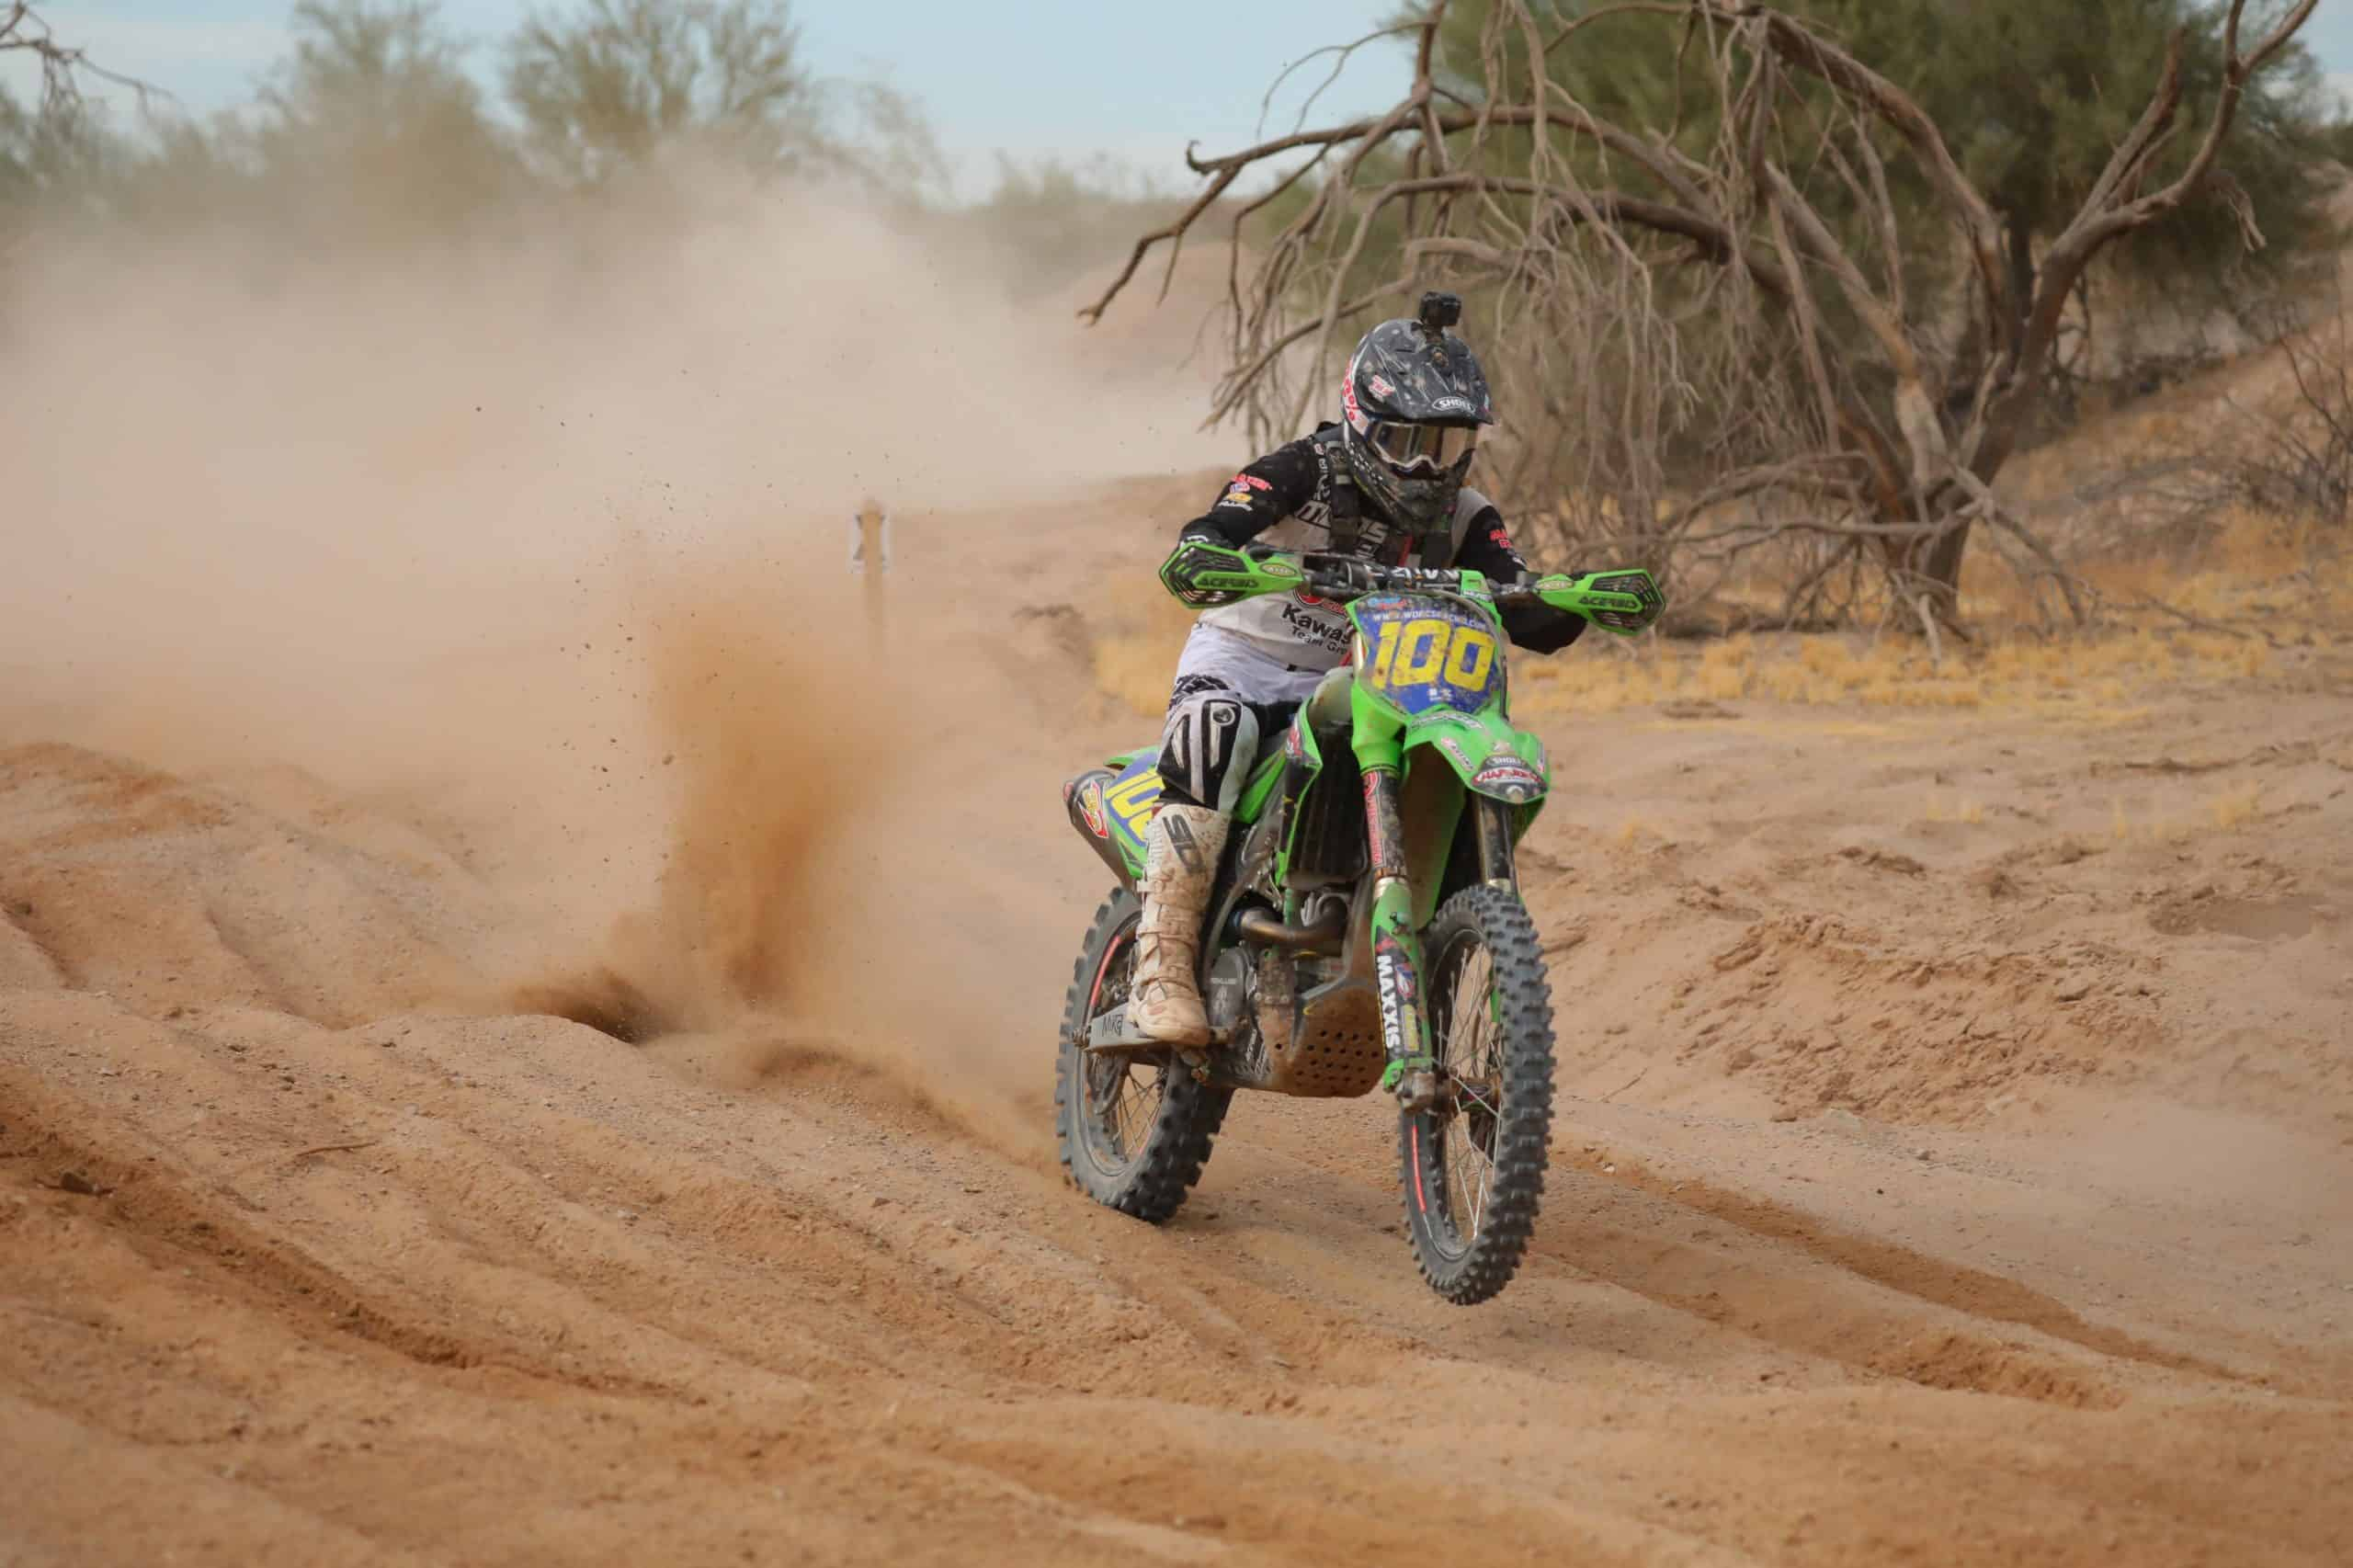 zach bell riding his kx450 at the 2020 blythe worcs race